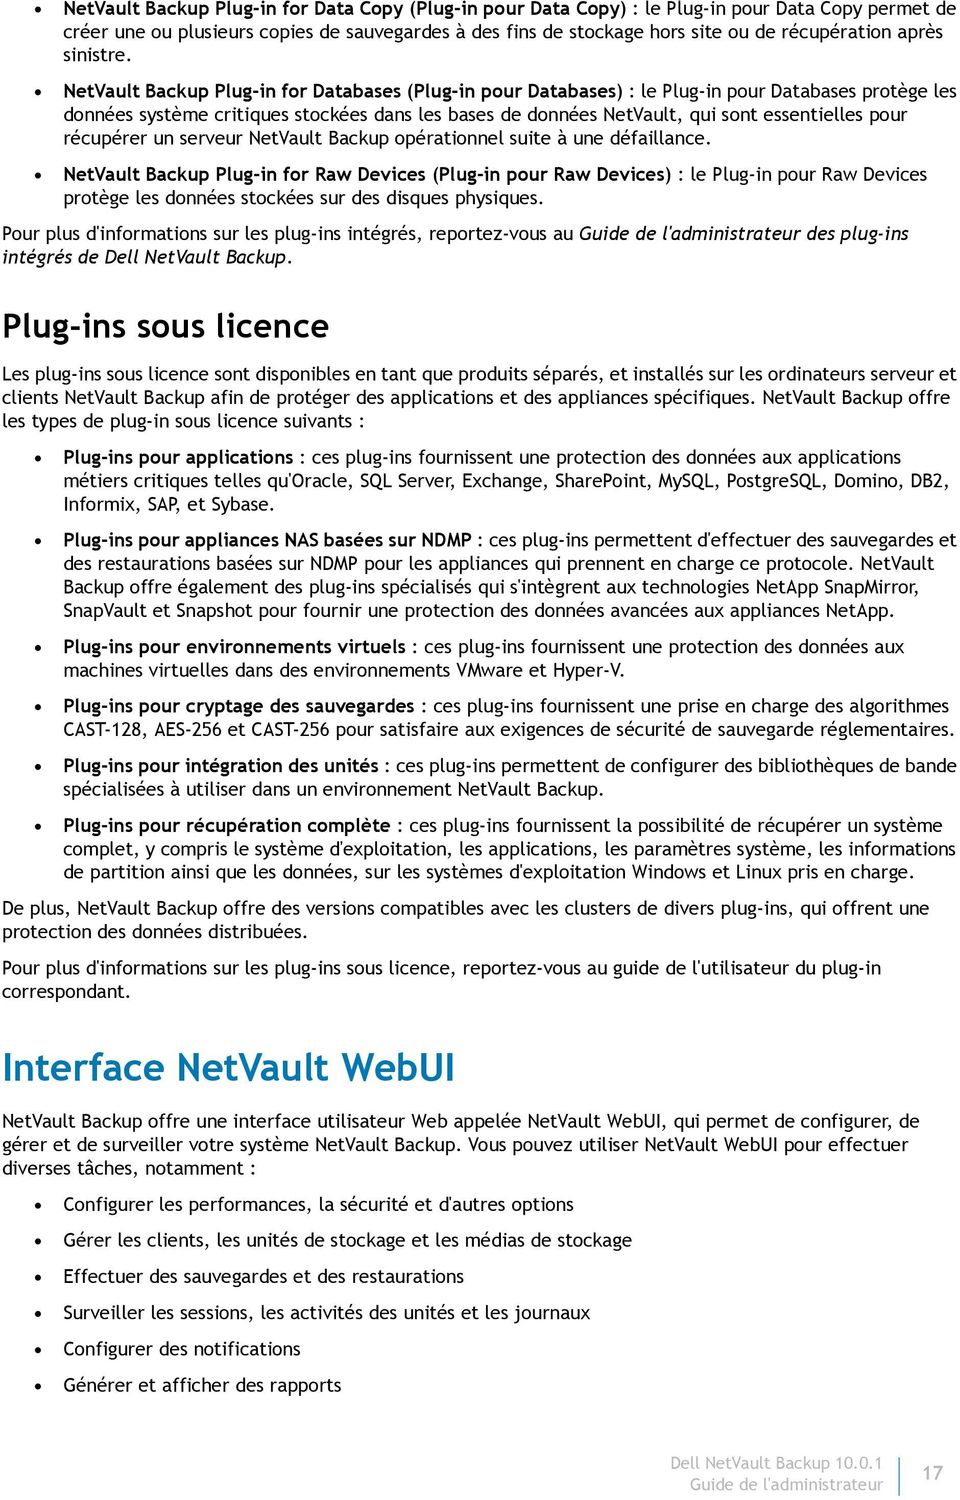 NetVault Backup Plug-in for Databases (Plug-in pour Databases) : le Plug-in pour Databases protège les données système critiques stockées dans les bases de données NetVault, qui sont essentielles